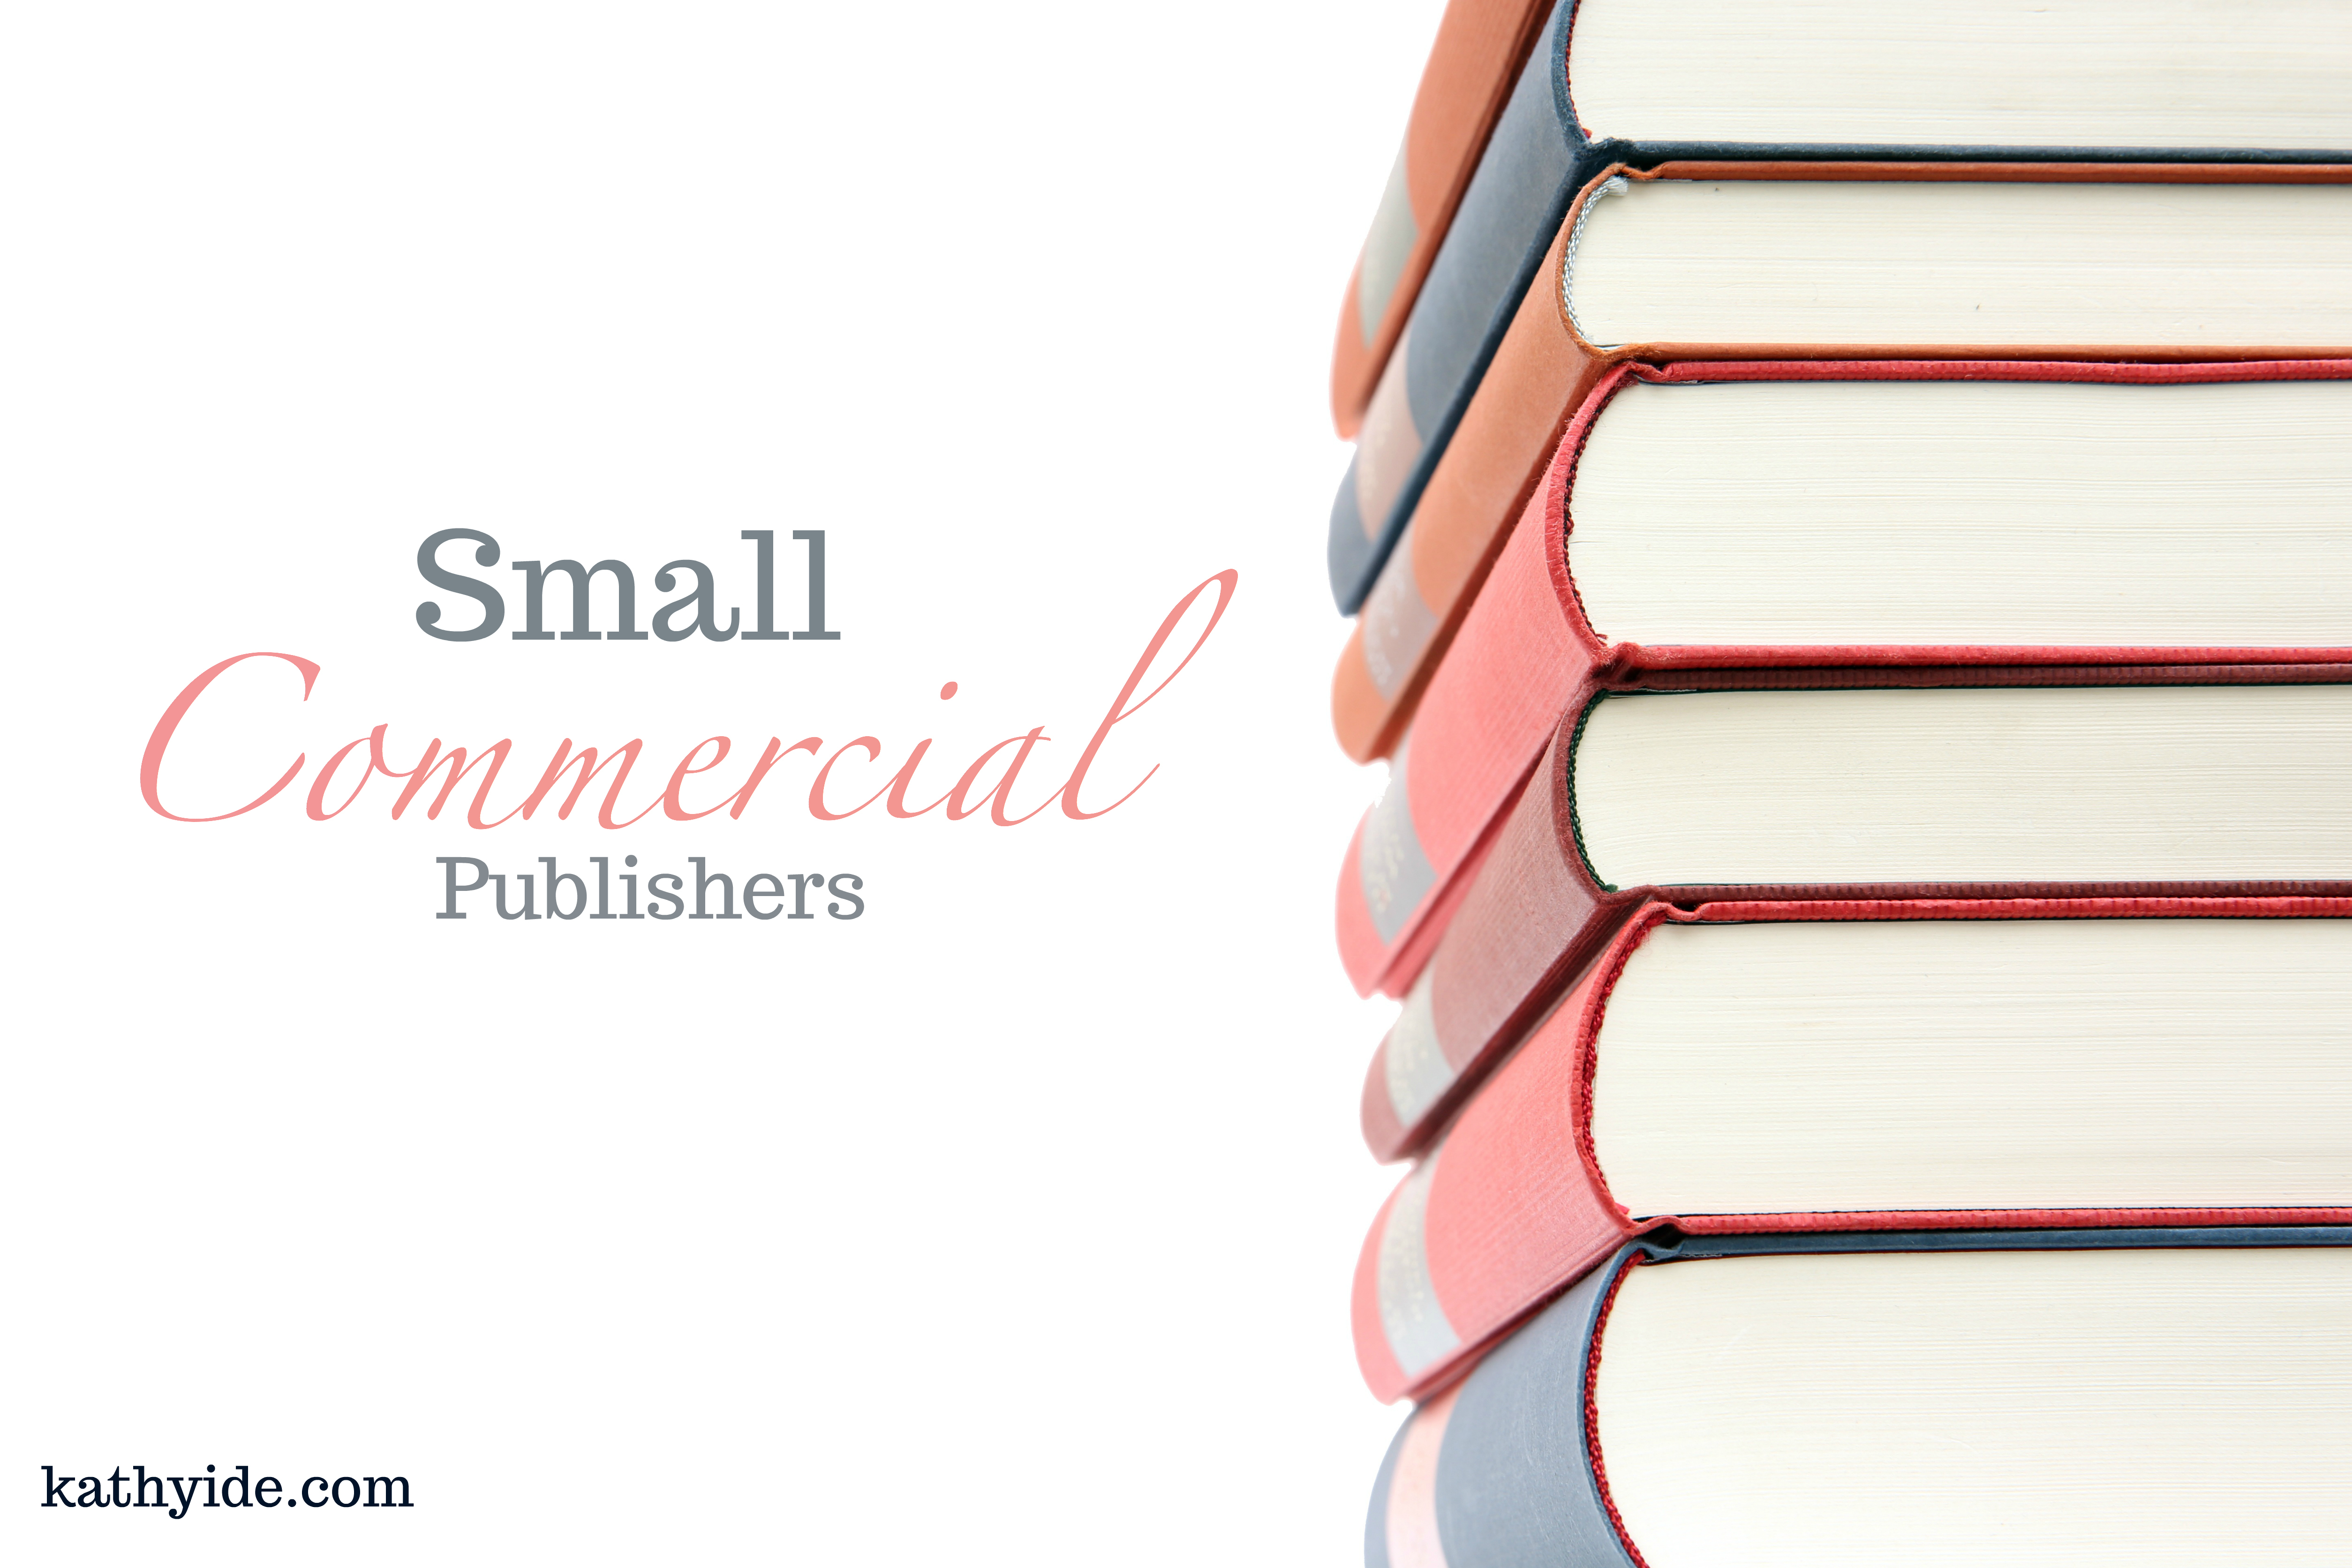 Small Commercial Publishers